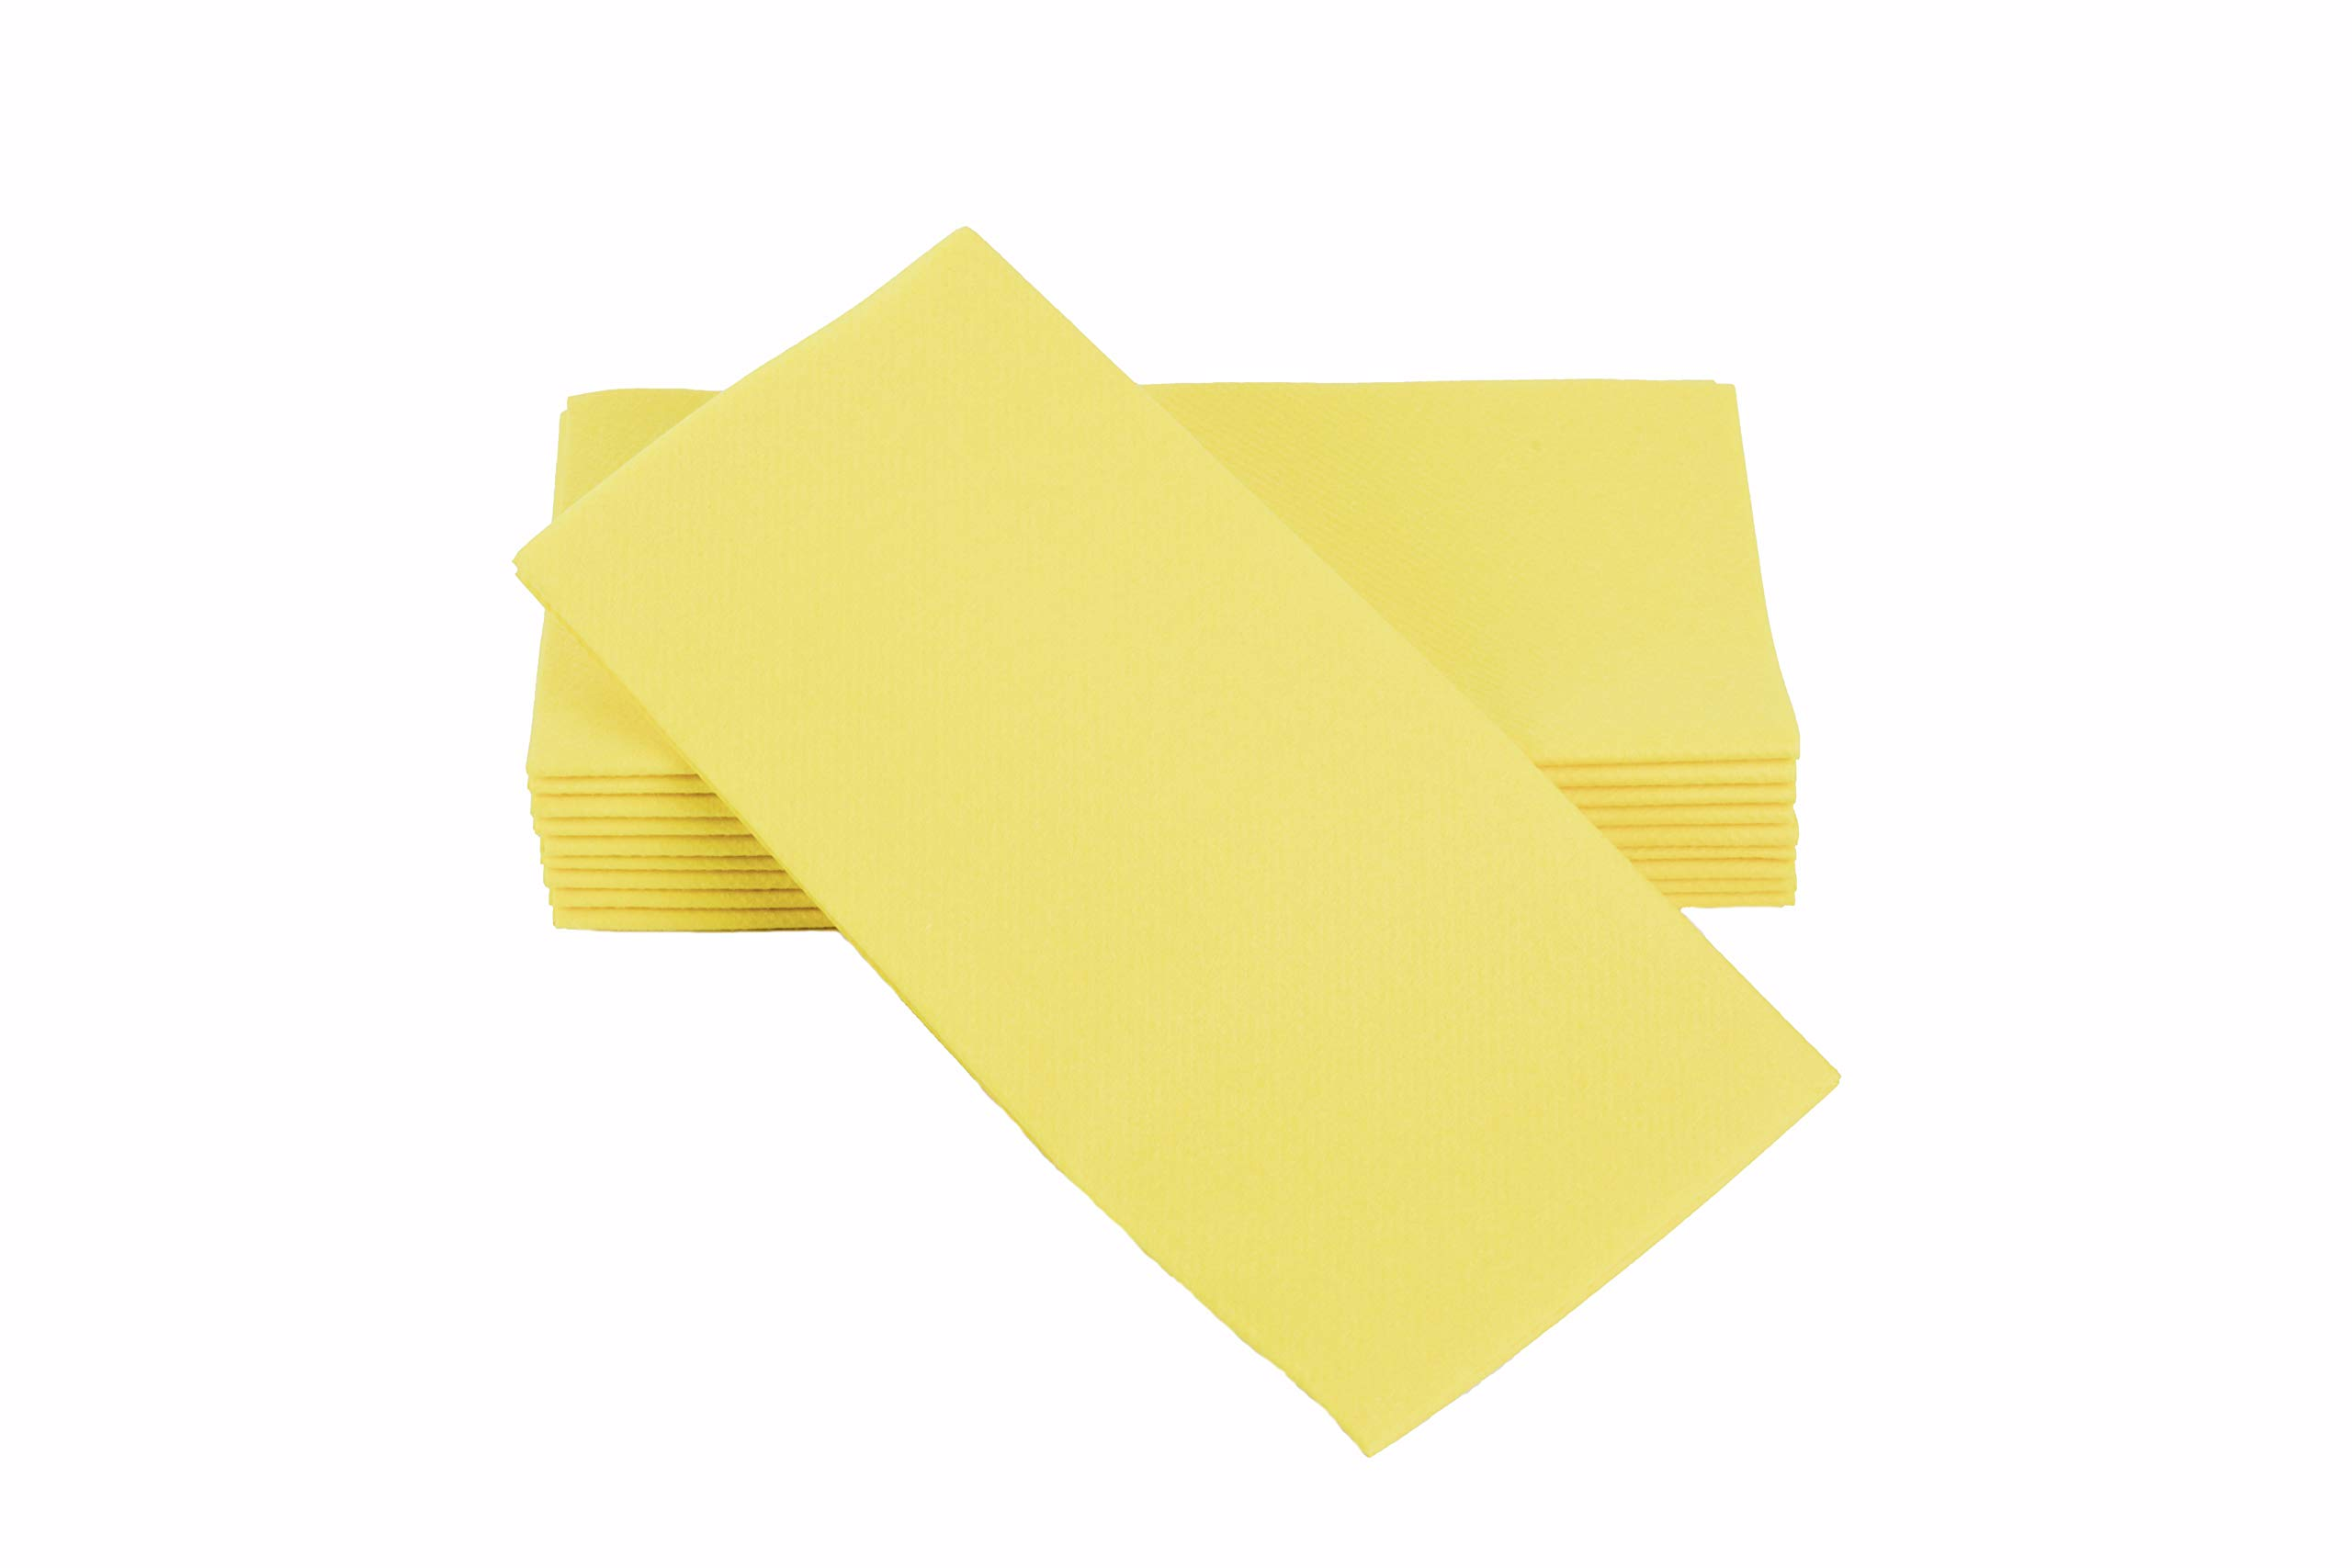 """Simulinen Colored Napkins - Decorative Cloth Like & Disposable, Dinner Napkins - Yellow, Soft, Absorbent & Durable - 16""""x16"""" - Great for Any Occasion! - Box of 50"""